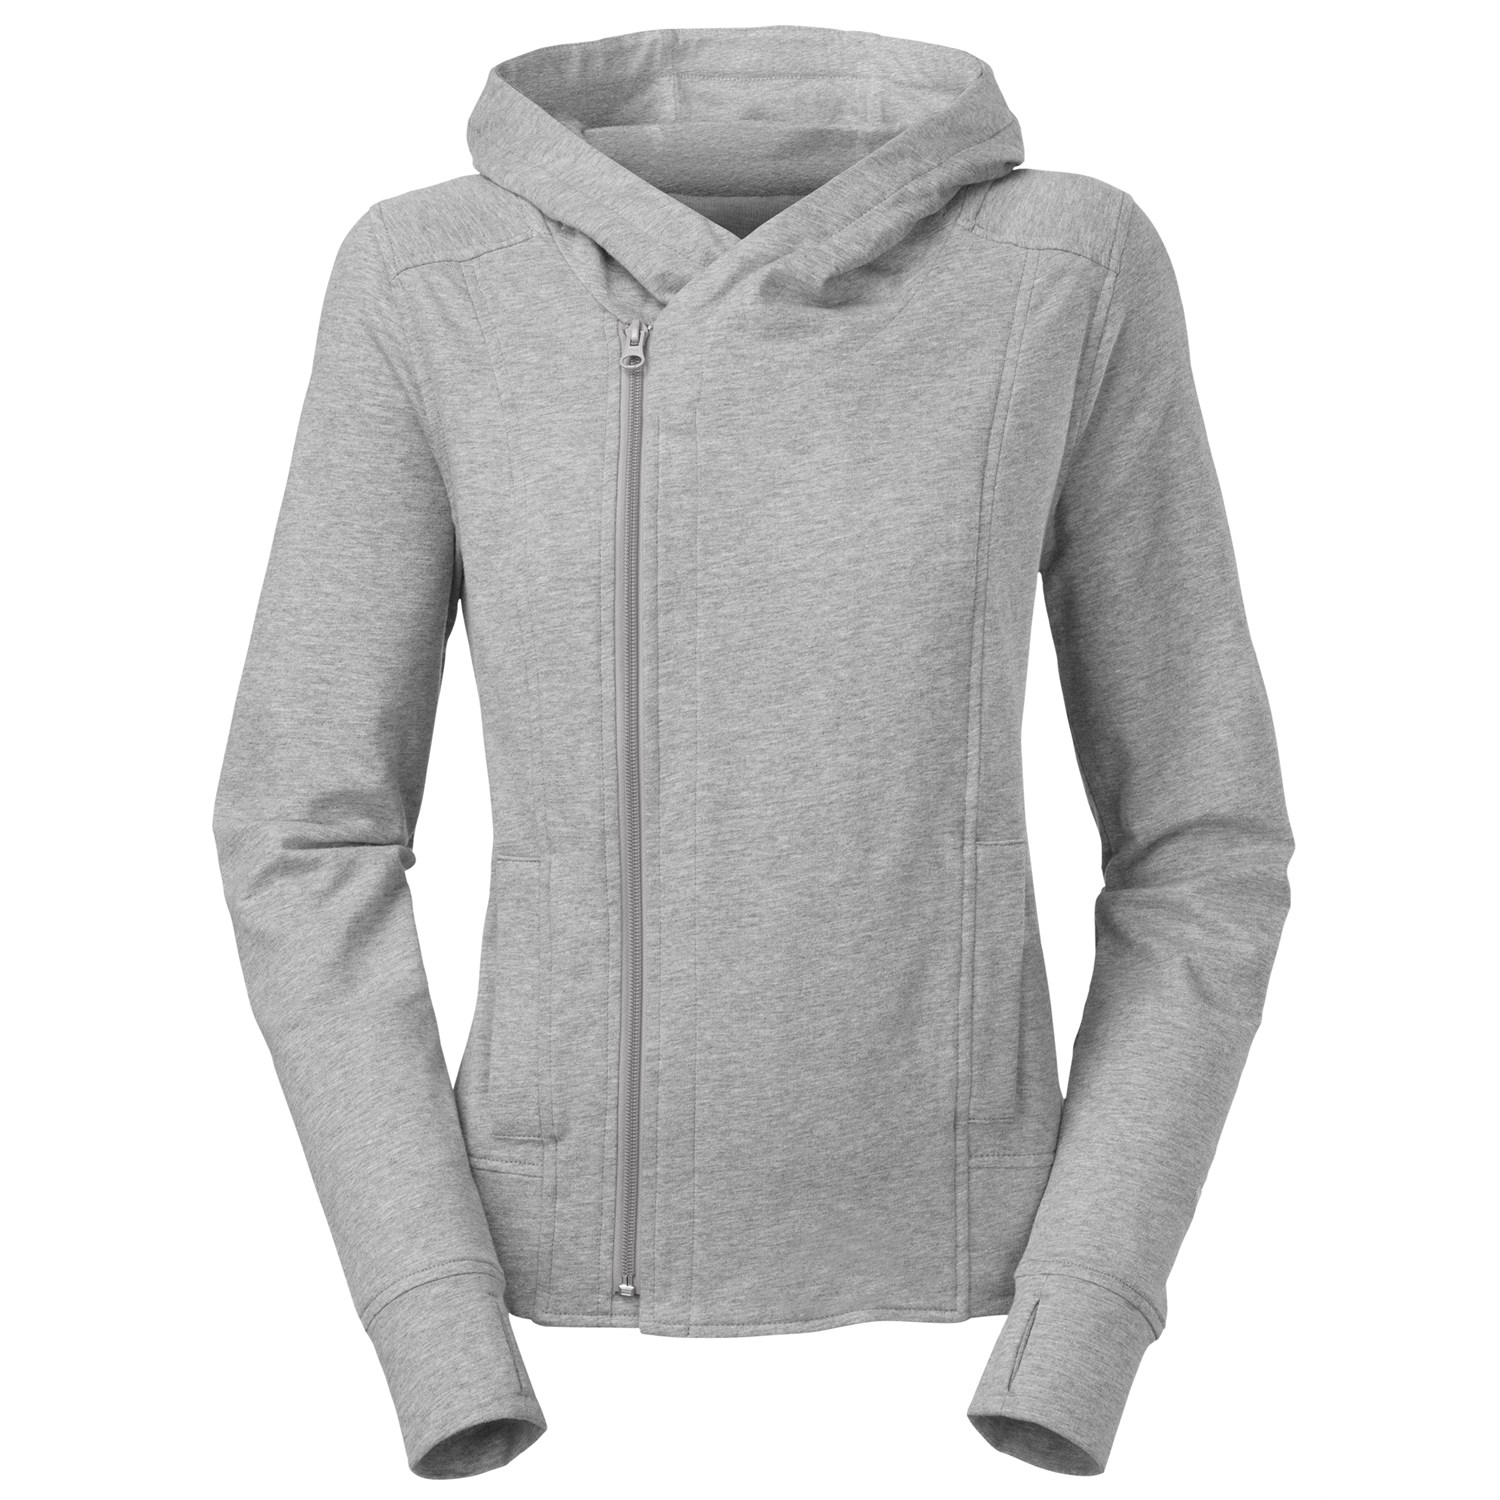 No matter the season hoodies and sweatshirts are a great clothes staple that girls should always have in their wardrobe. Wearing them are super comfortable, cozy and warm, and besides hoodies can work correctly for a dress - down outfit, they are many ways to style .